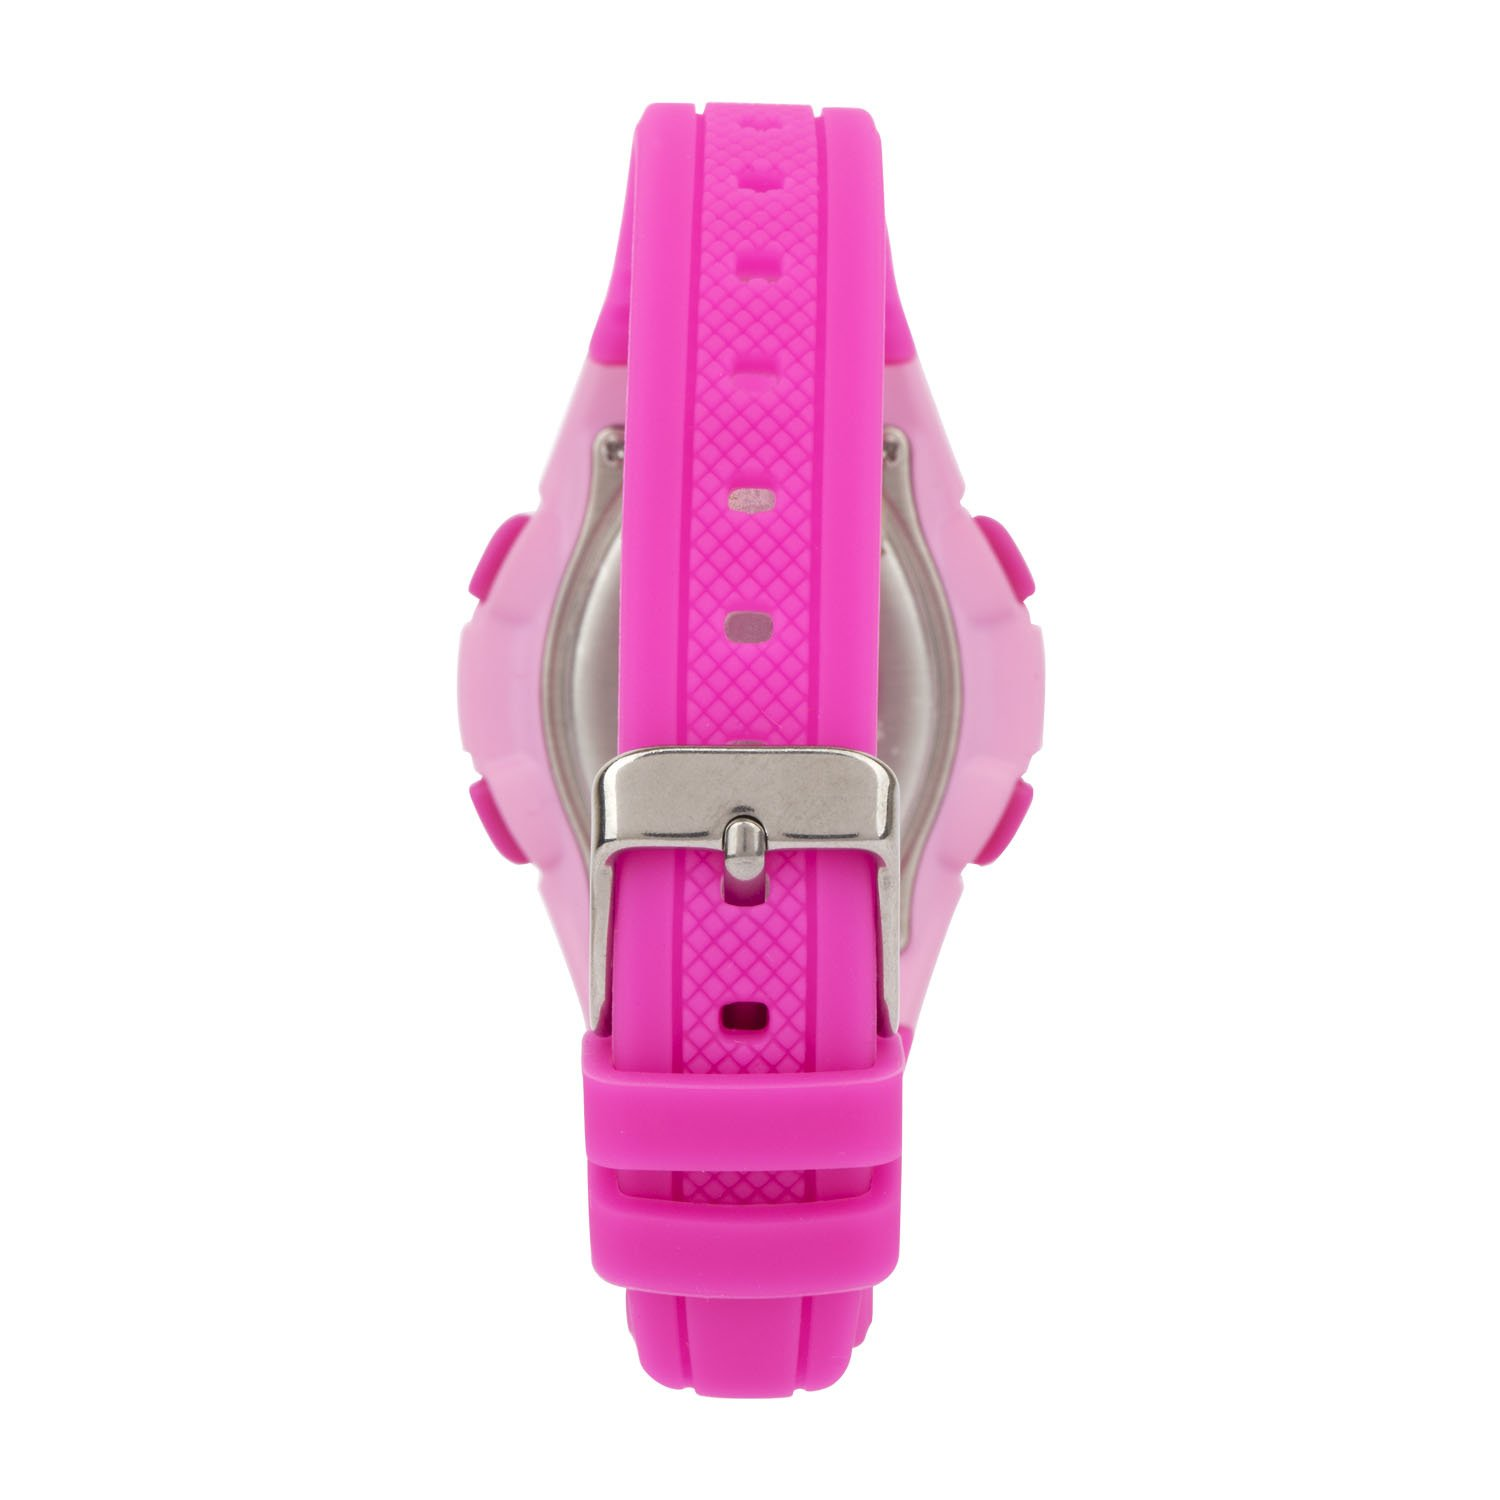 Cactus Rambler Digital LCD Watch Hot Pink back